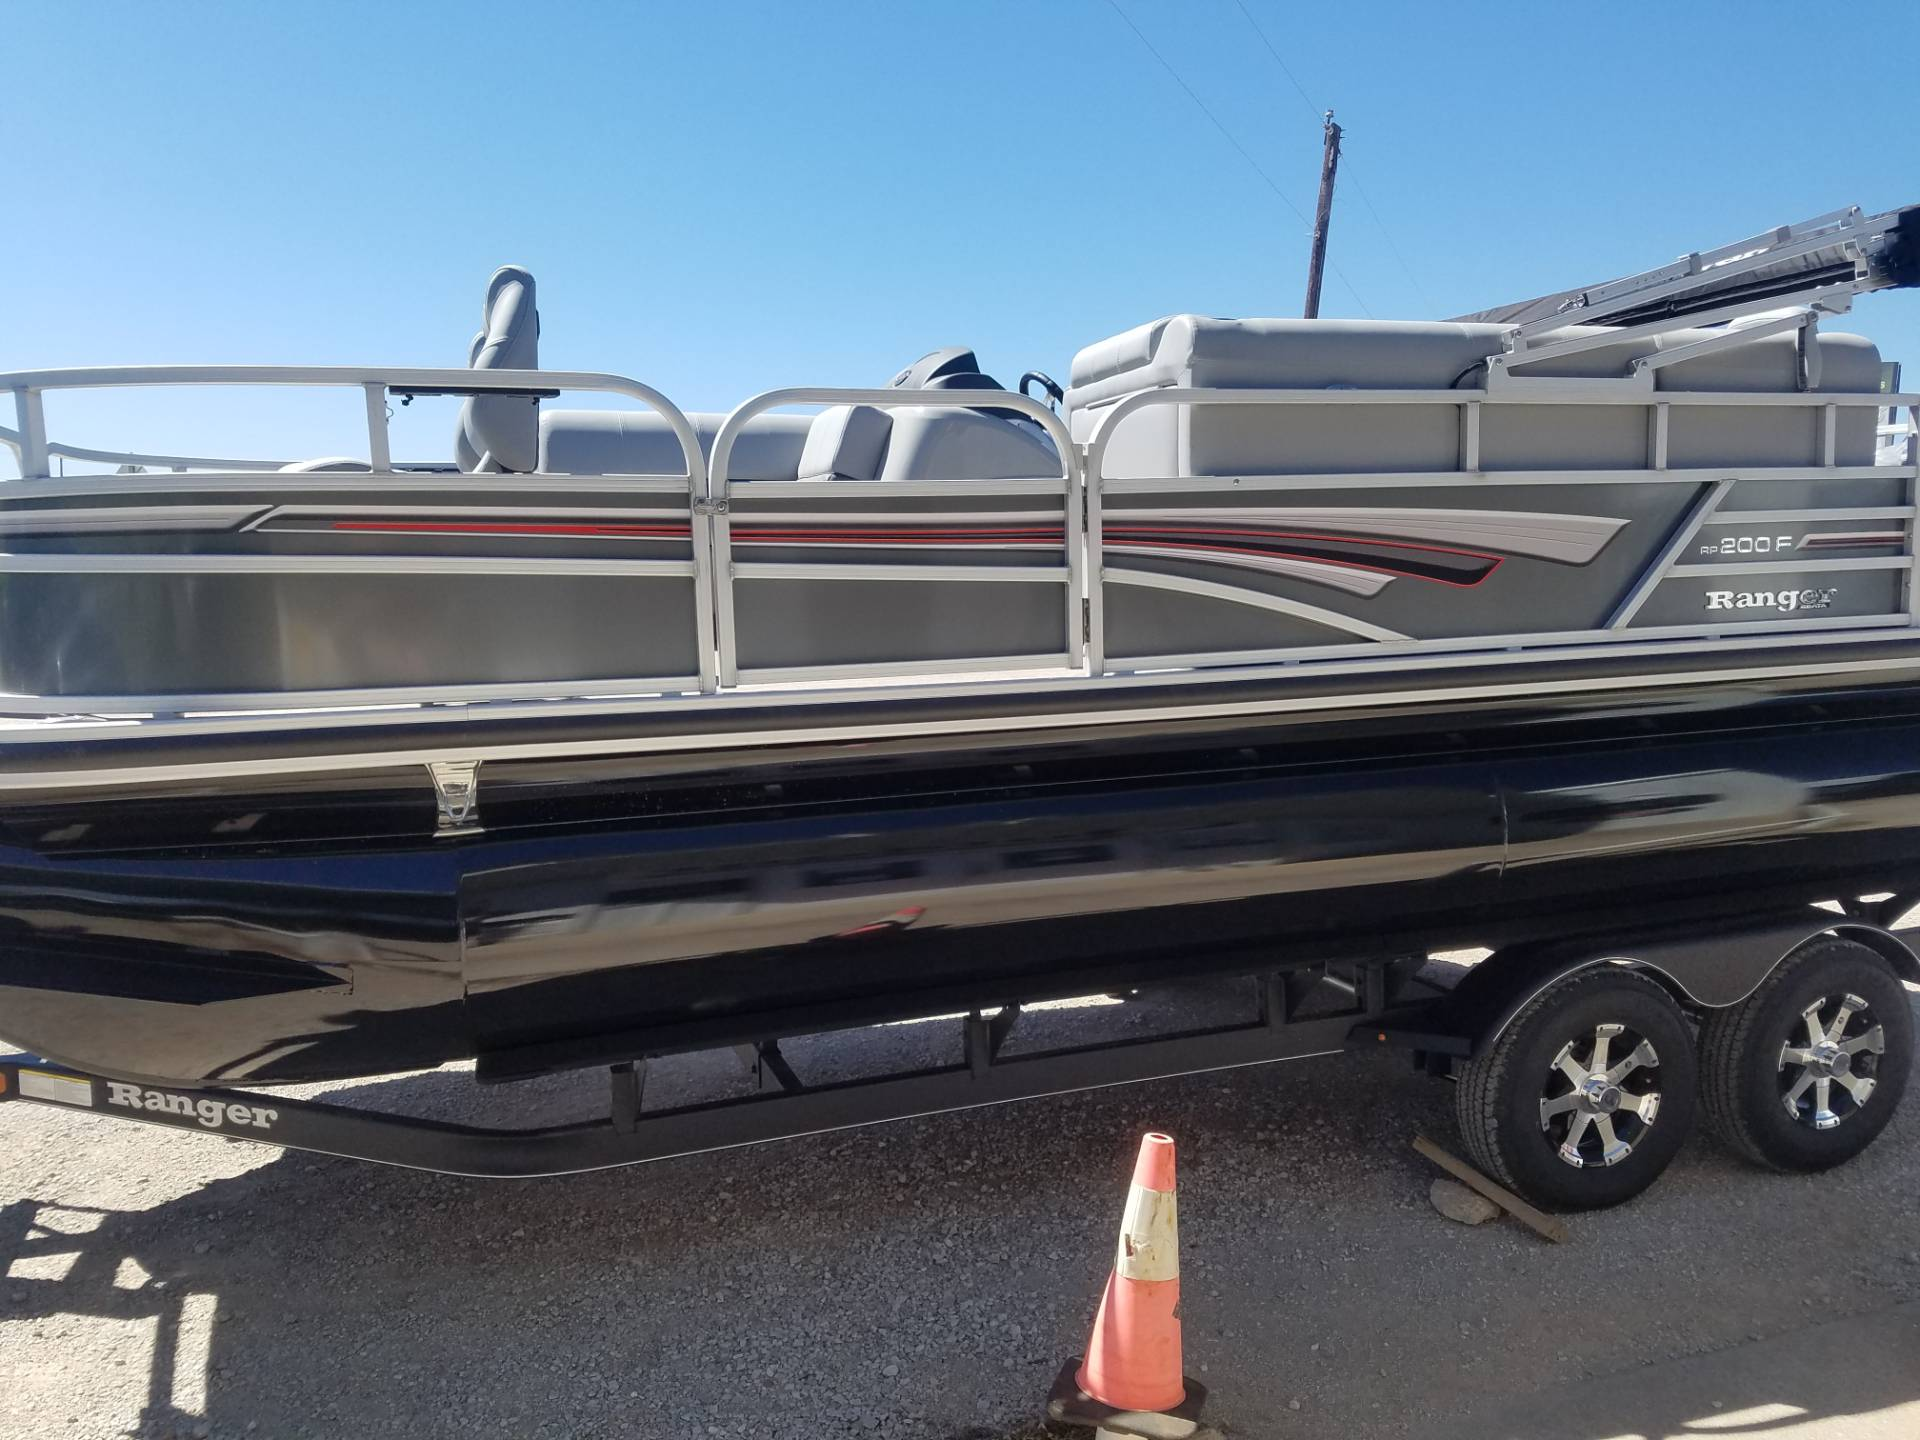 2019 Ranger Reata 200F in Eastland, Texas - Photo 4